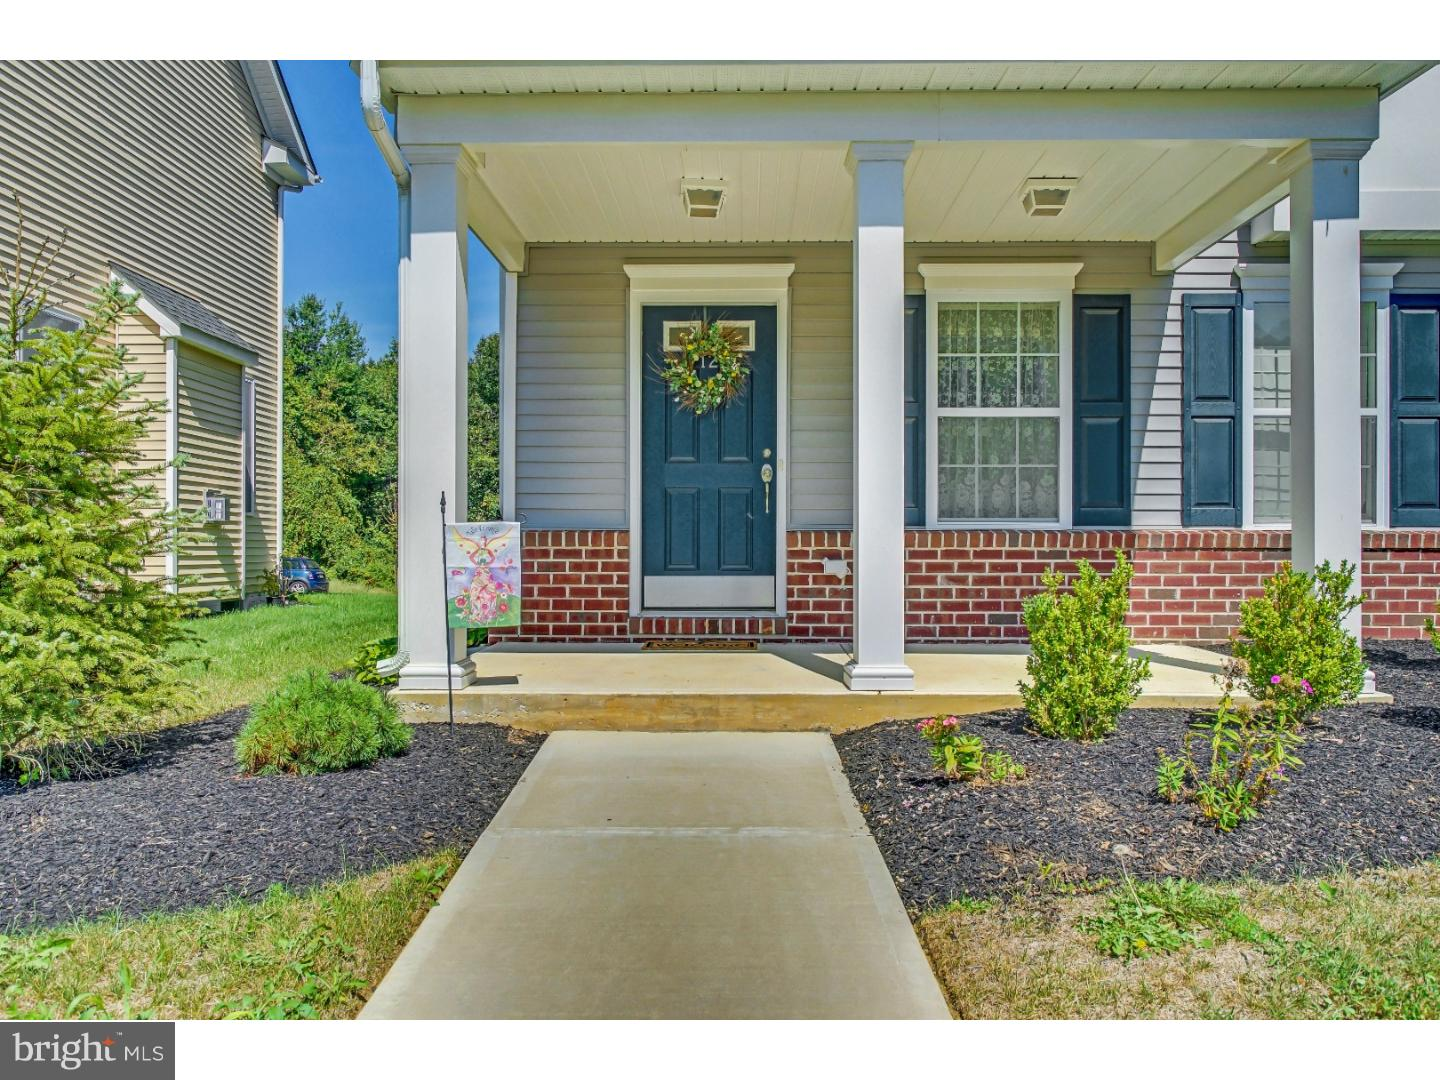 Single Family Home for Sale at 12 CANTER Place Chesterfield, New Jersey 08515 United StatesMunicipality: Chesterfield Township